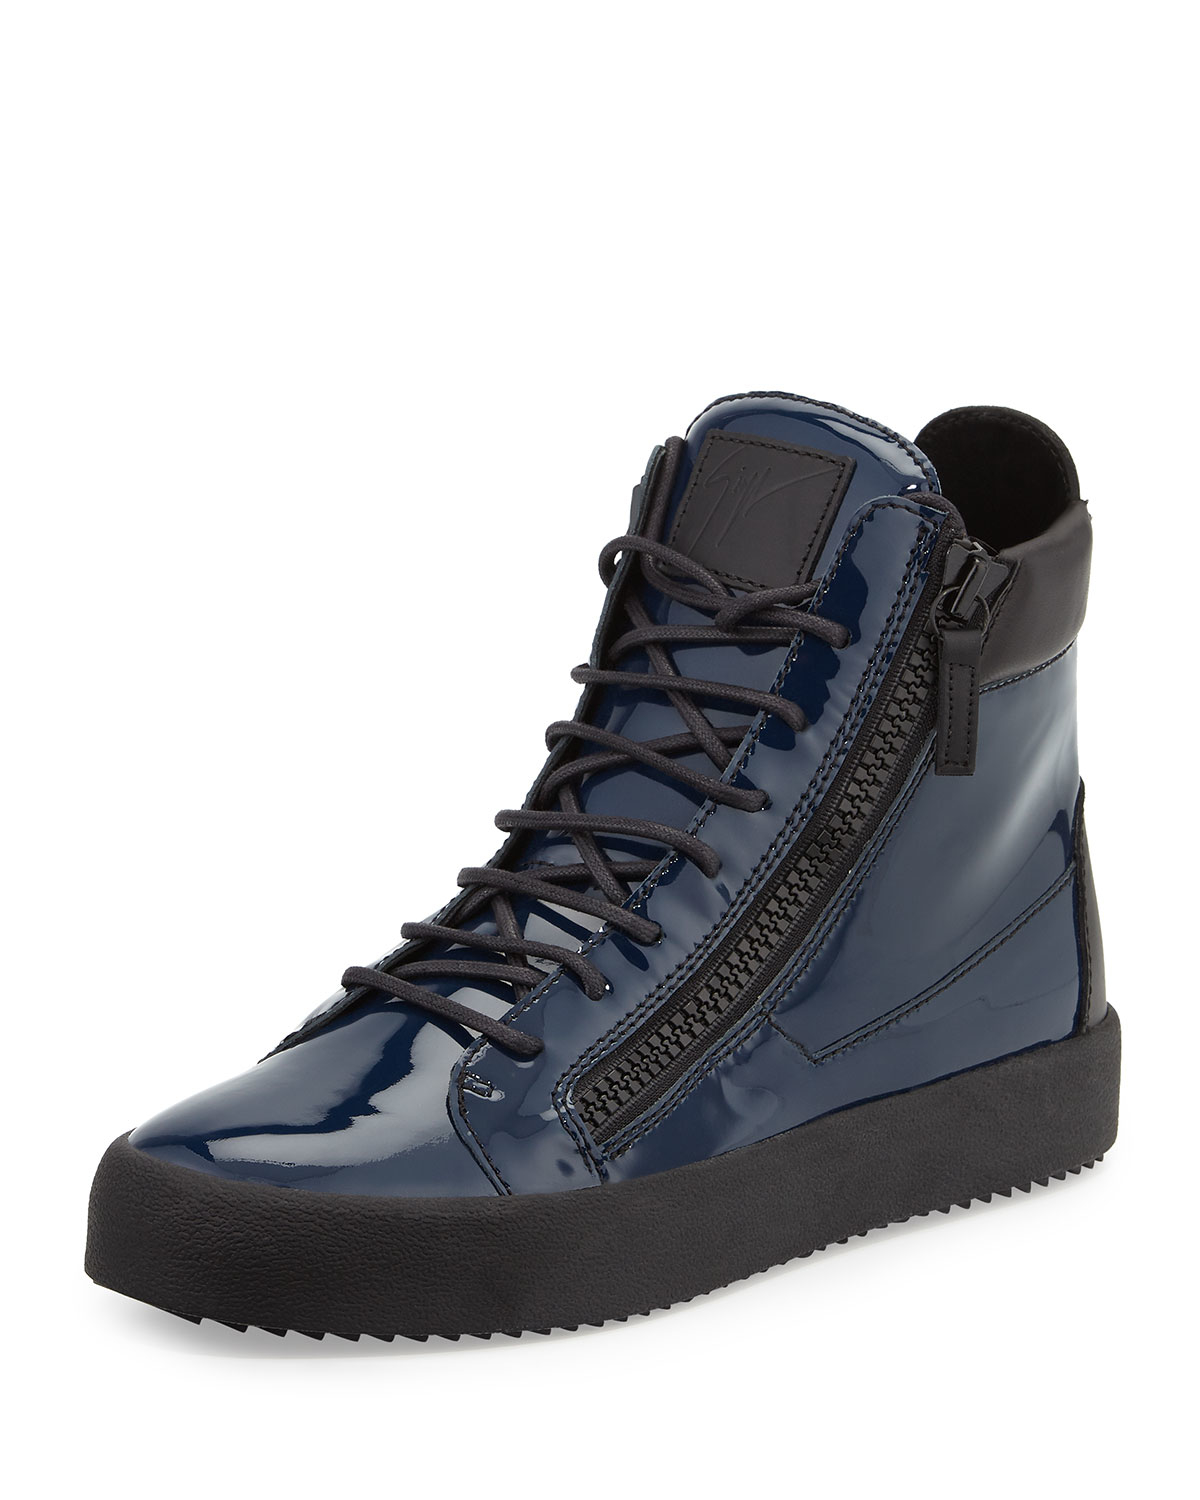 Giuseppe zanotti Patent Leather High-Top Sneakers in Blue ...